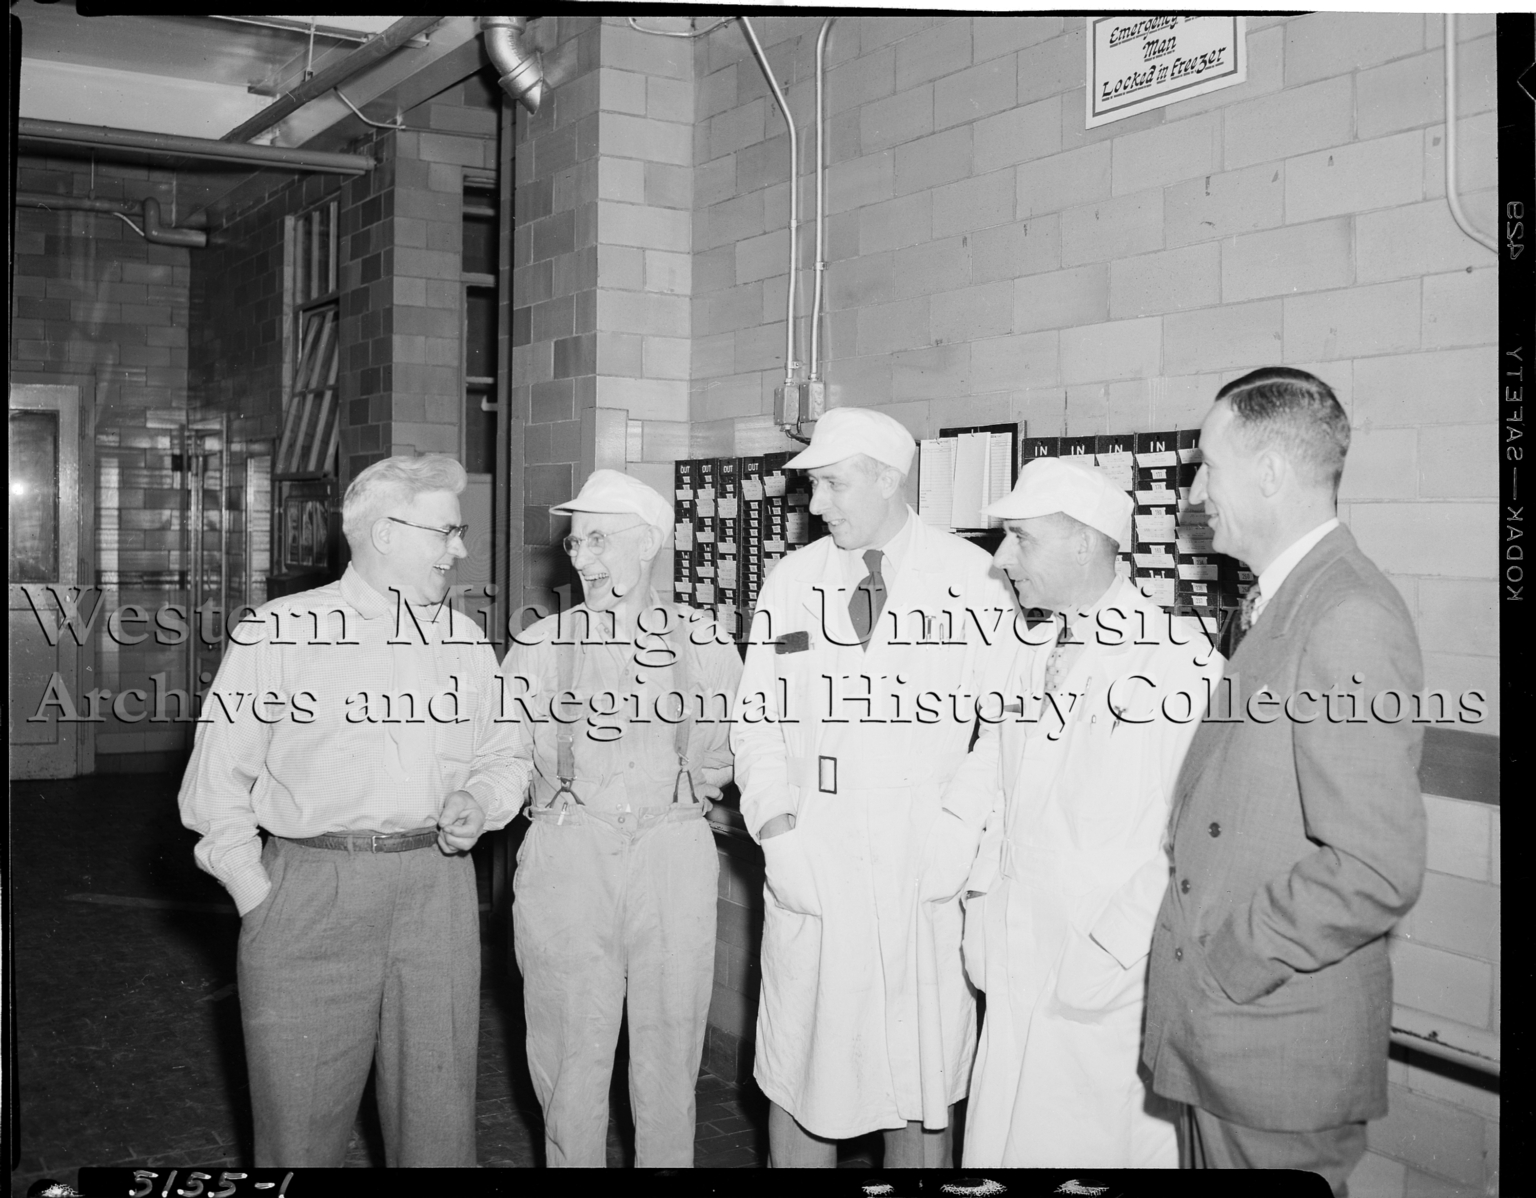 Peter Eckrich & Sons Company employees chatting in front of the time clock